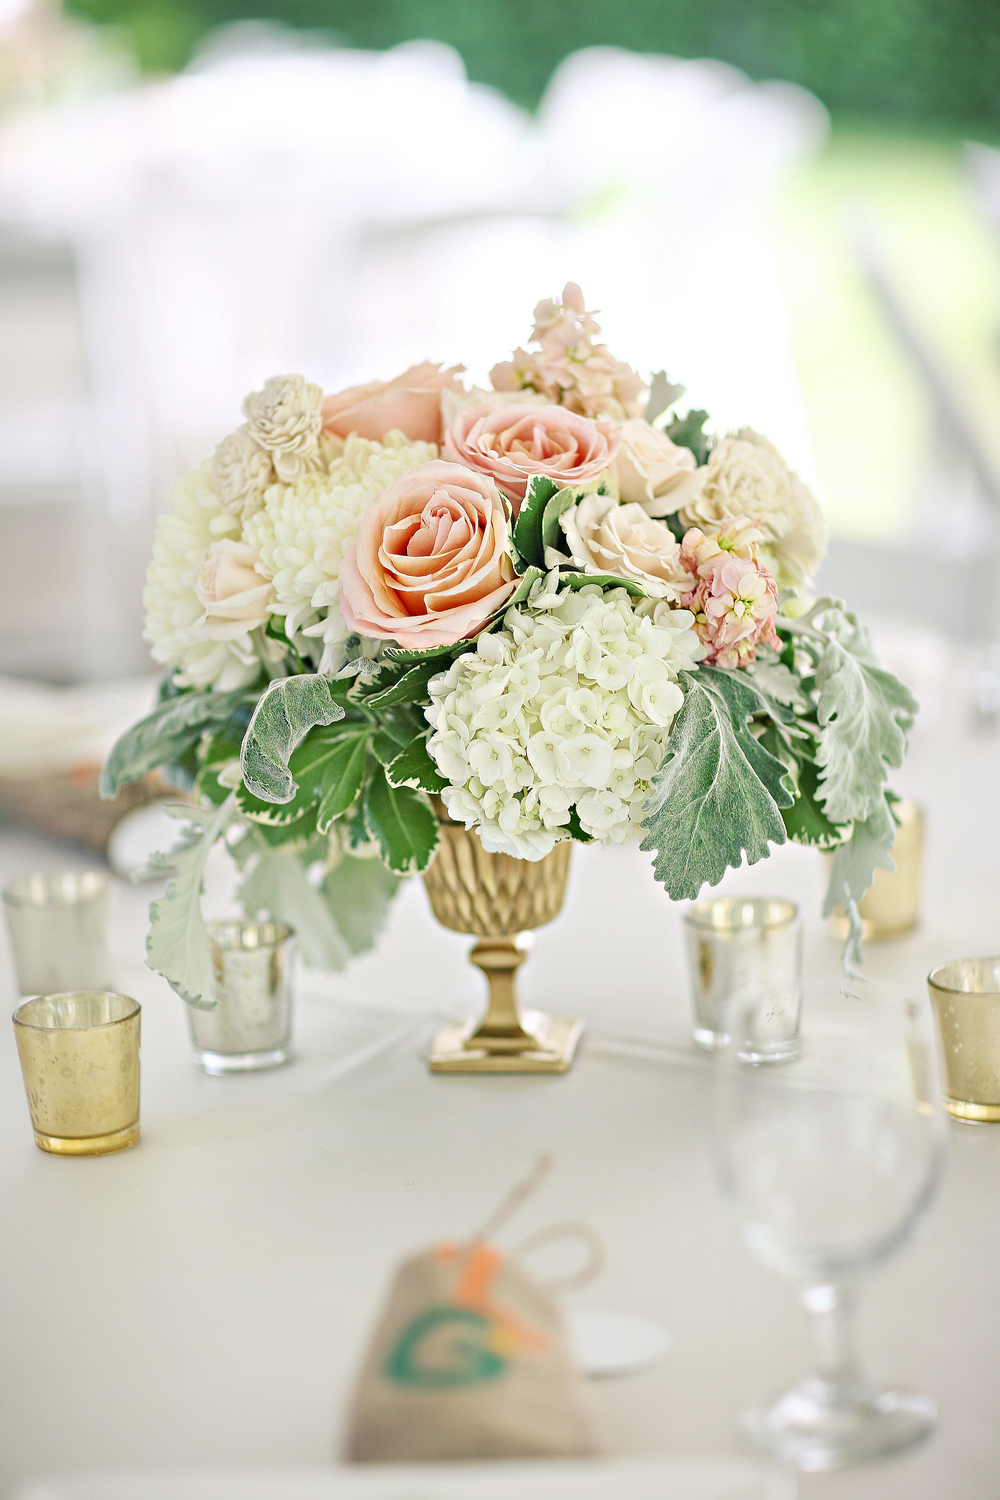 Passion roots oahu hawaii florist centerpieces peach accent flower arrangement in gold vase by passion roots frank amodo photography oahu junglespirit